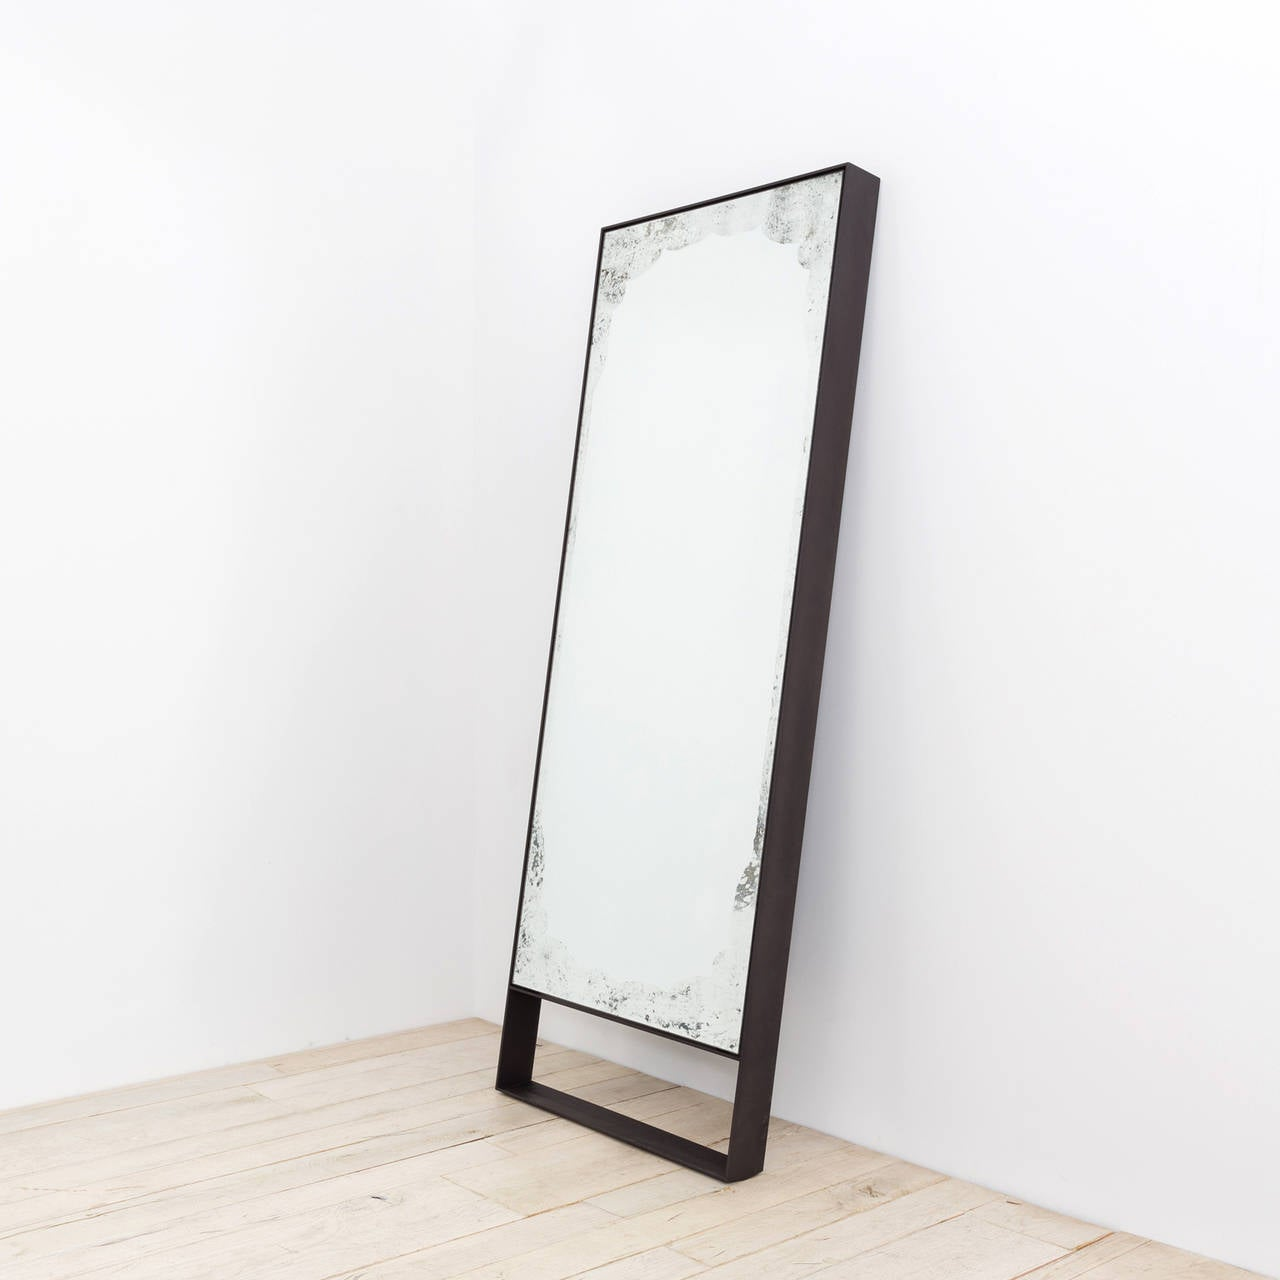 Antique mod mirror by uhuru design hand blackened steel for Black floor length mirror